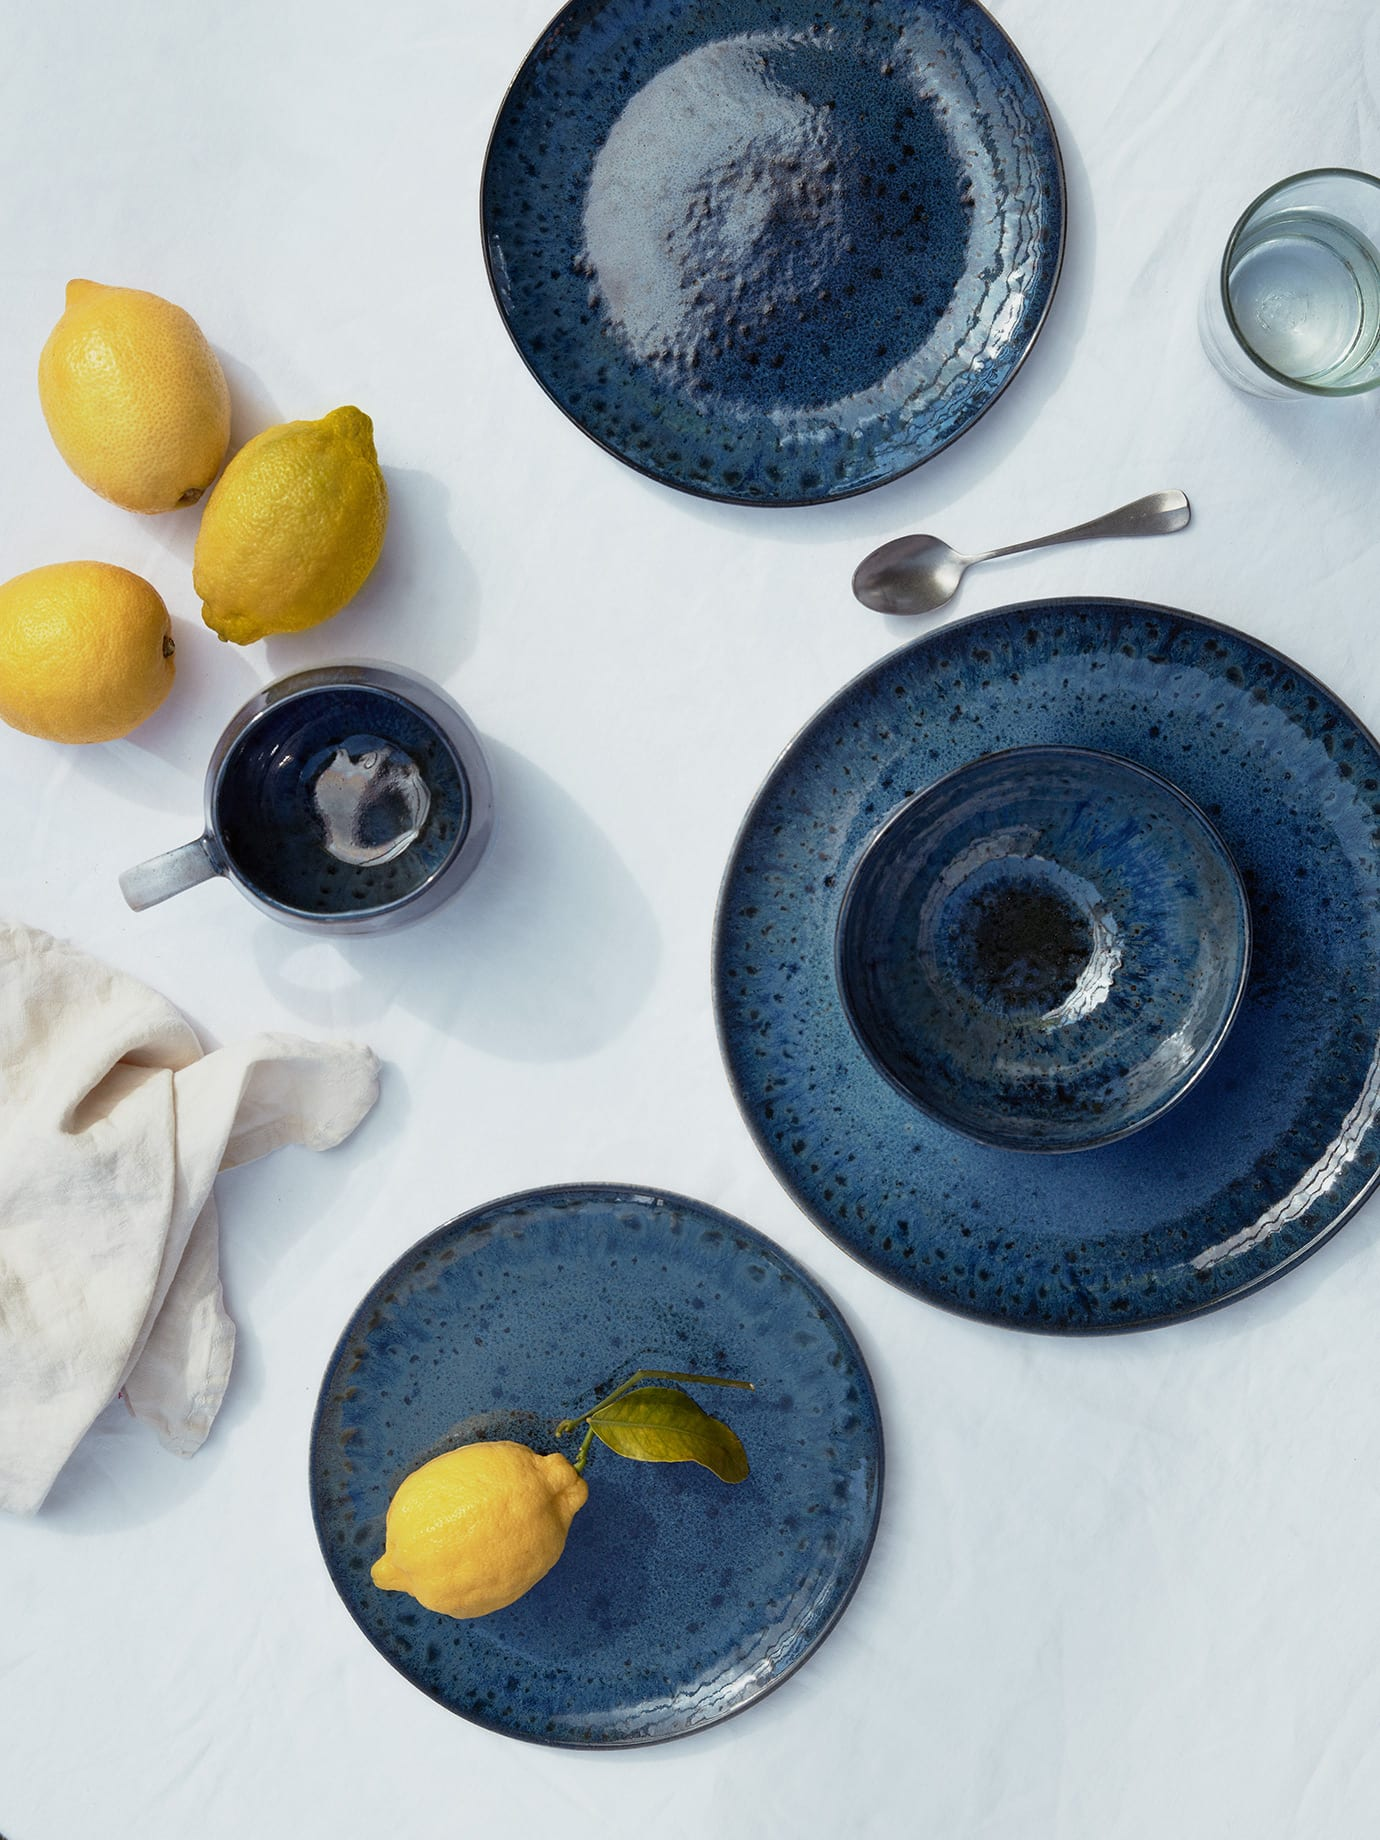 Lemons and blue tableware on a table top.